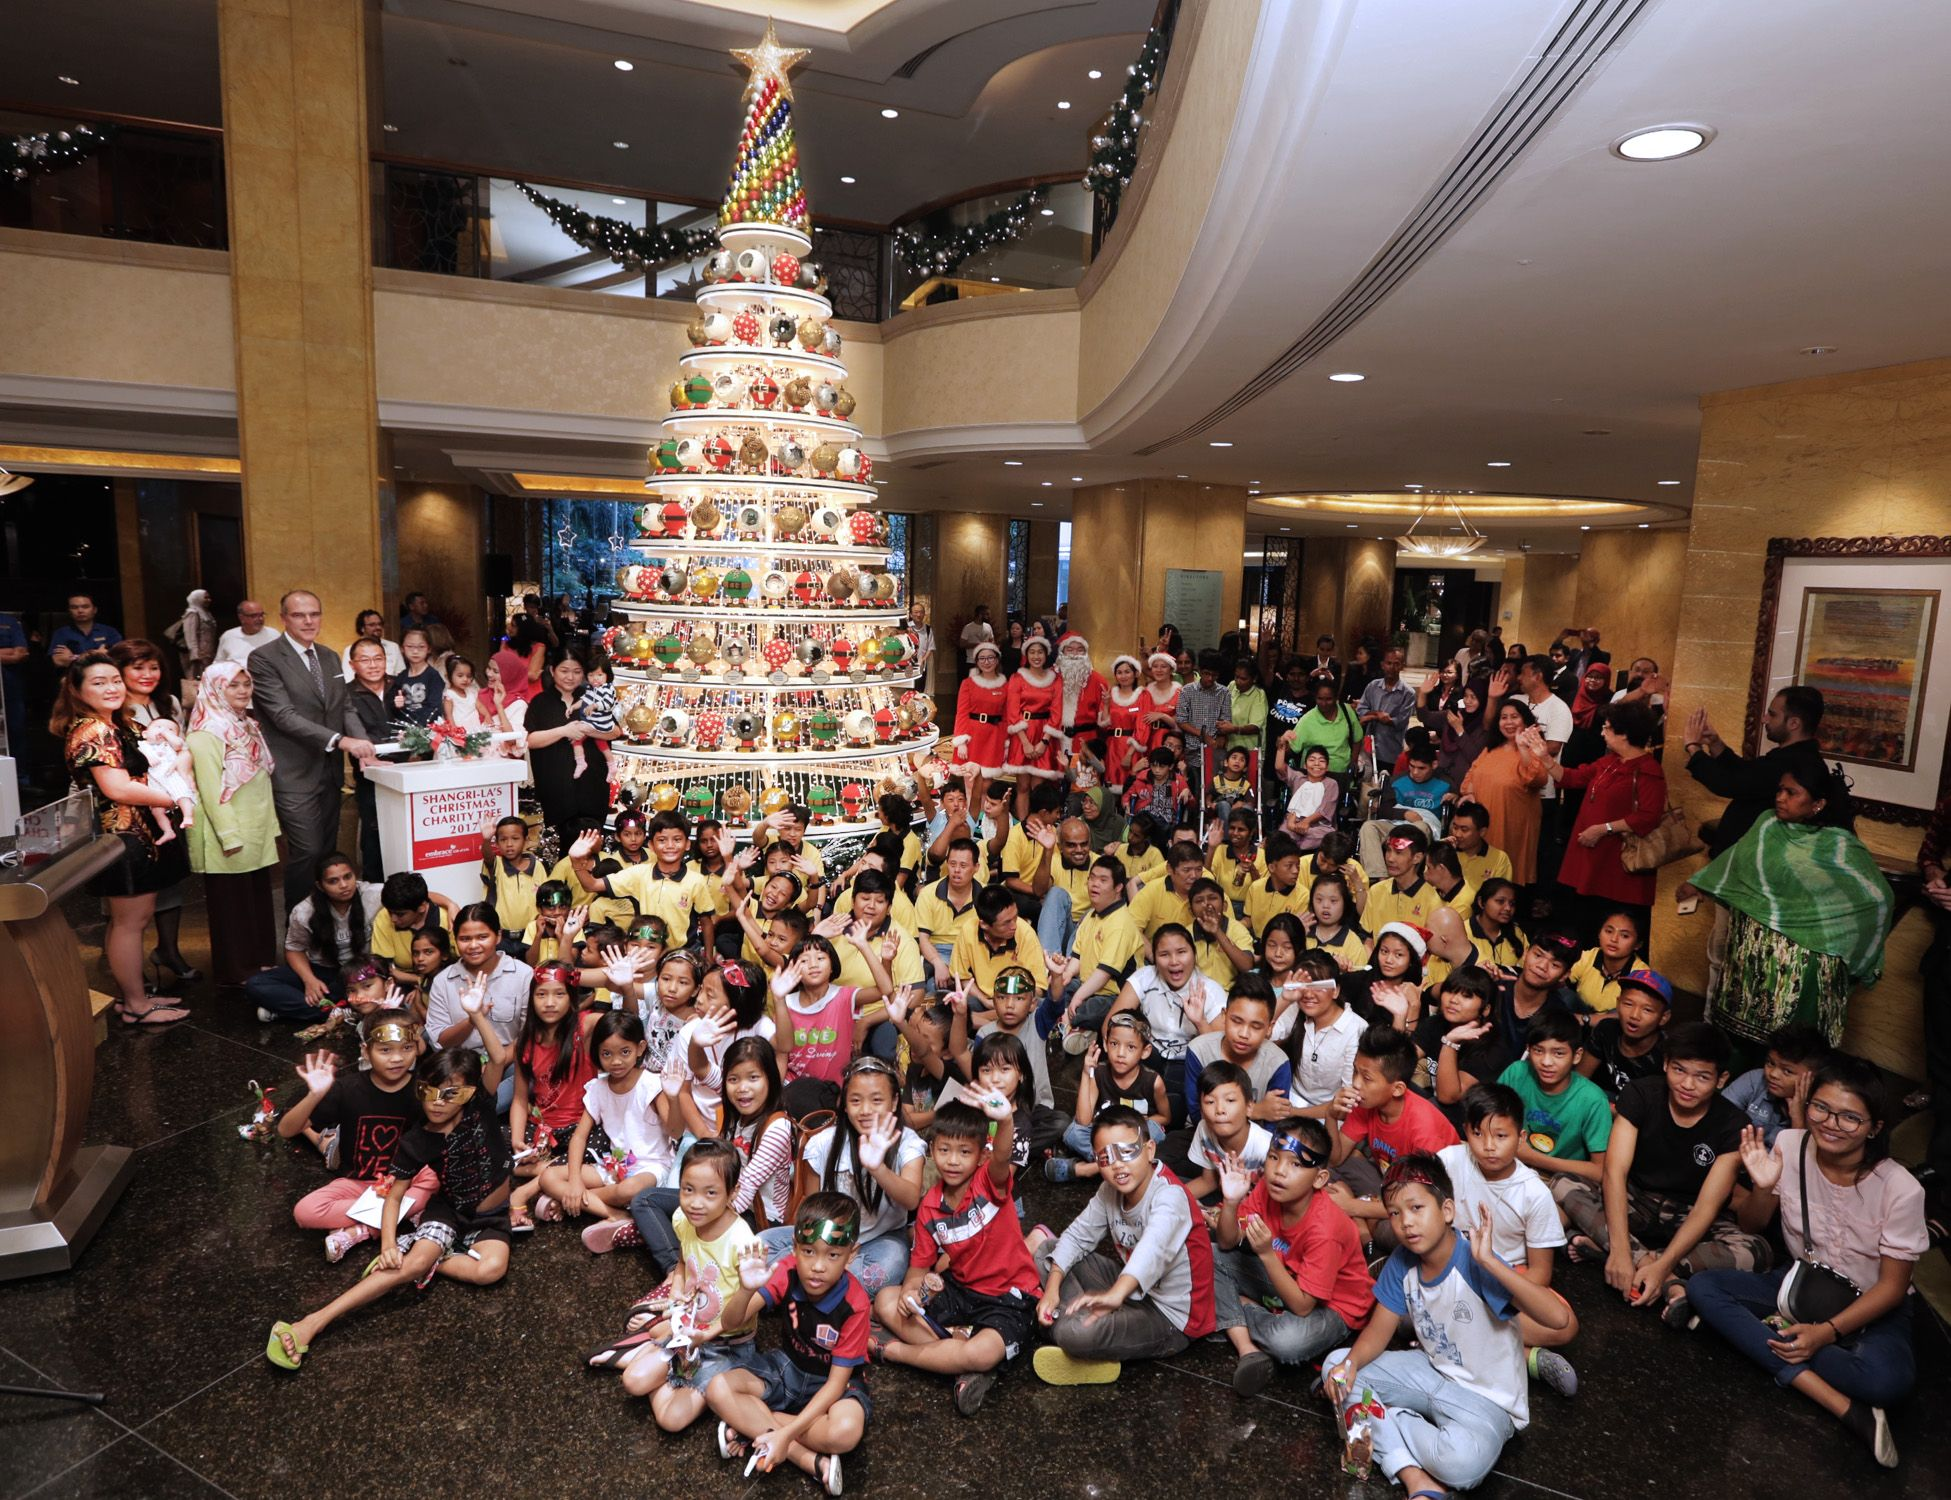 Manfred Weber - standing fourth from left - area general manager of Shangri-La Hotel Kuala Lumpur,  lighted up 'The Glittering Baubles of Life' Christmas tree